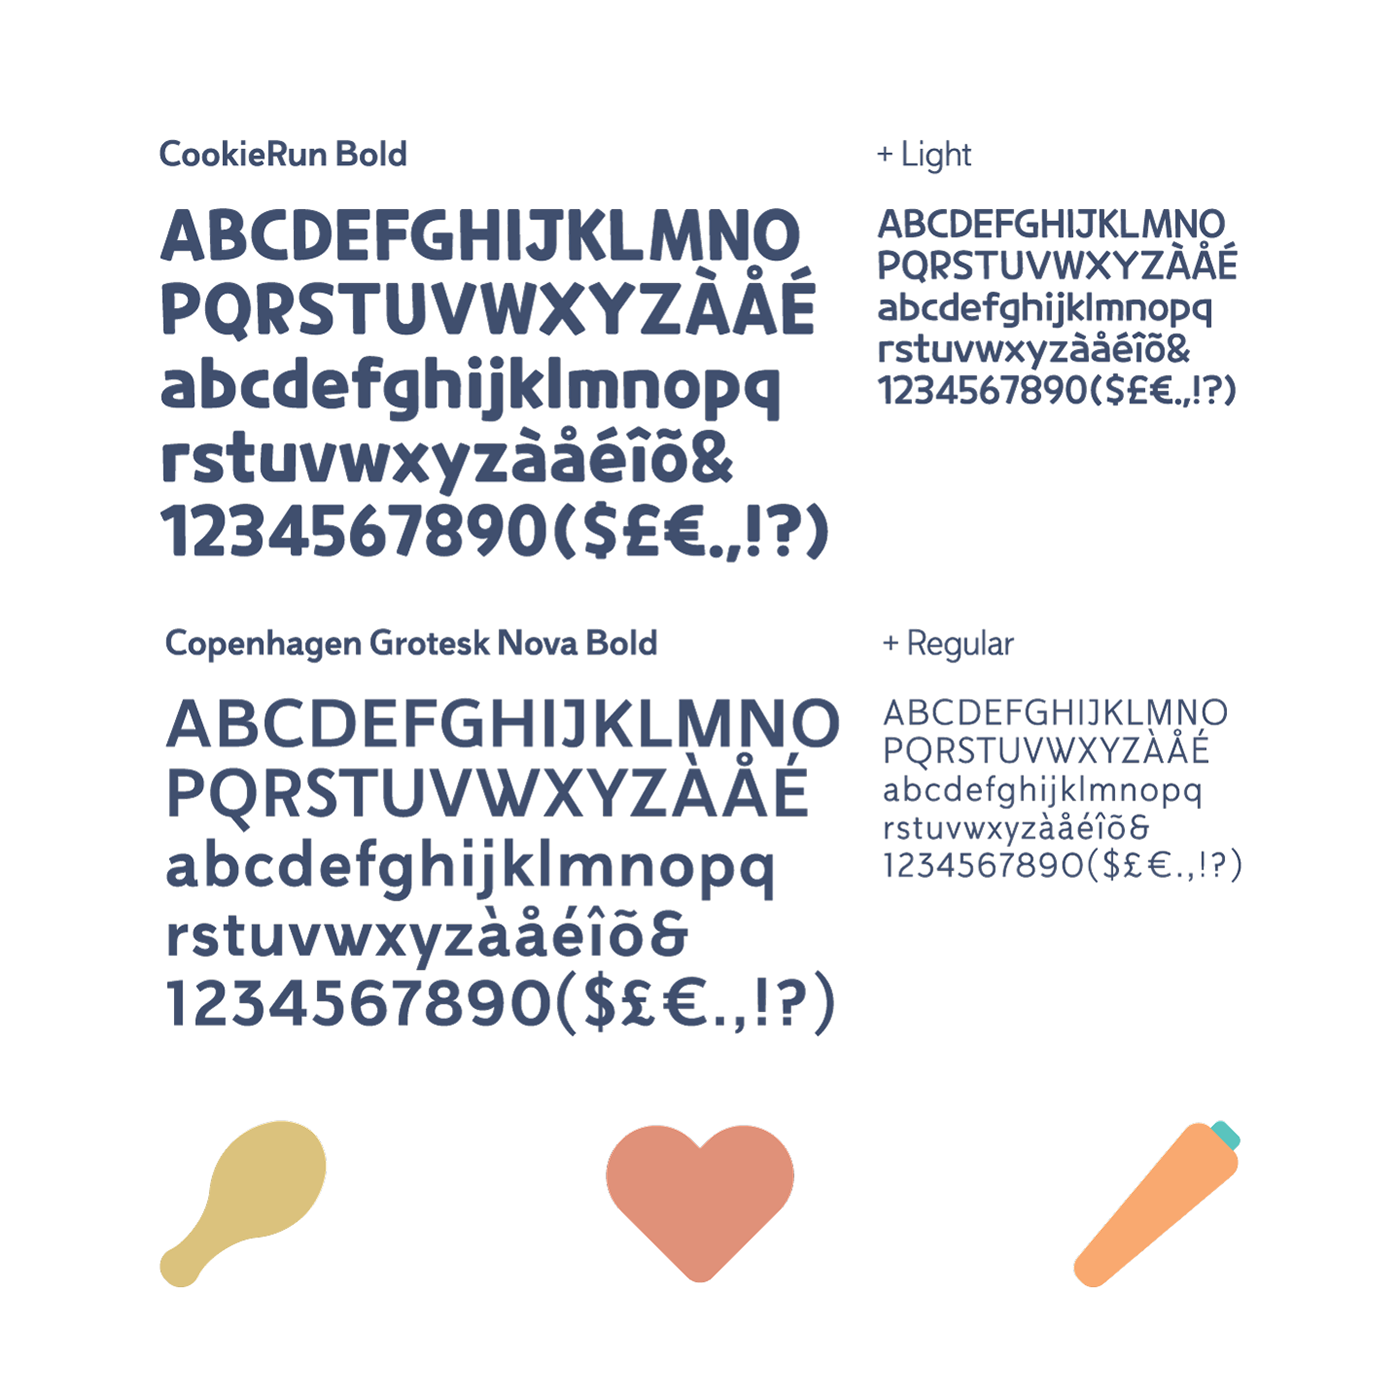 A brief presentations of the fonts and icons used in the project. Fonts are CookieRun and Copenhagen